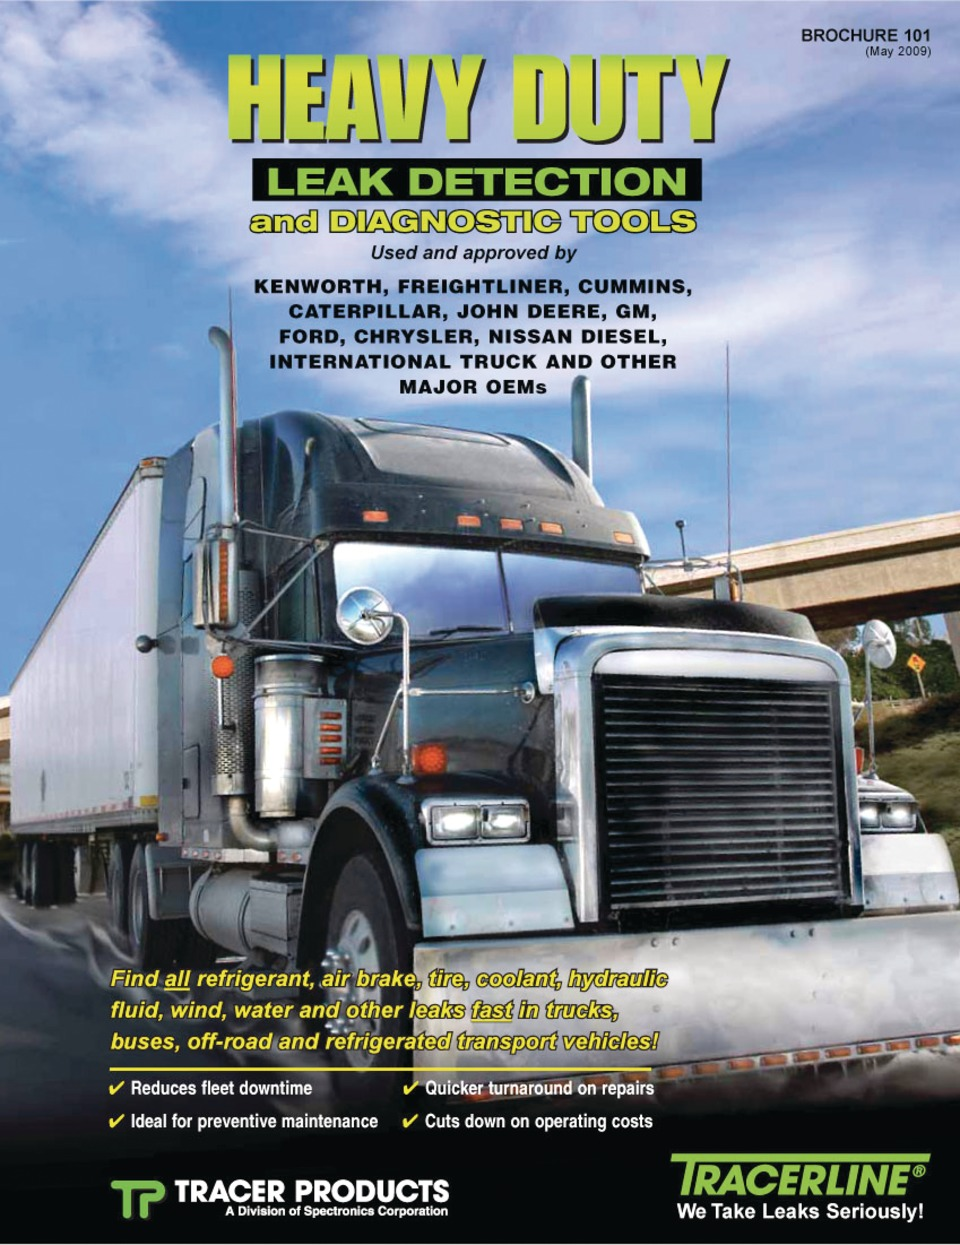 Leakdetectionguide10130602